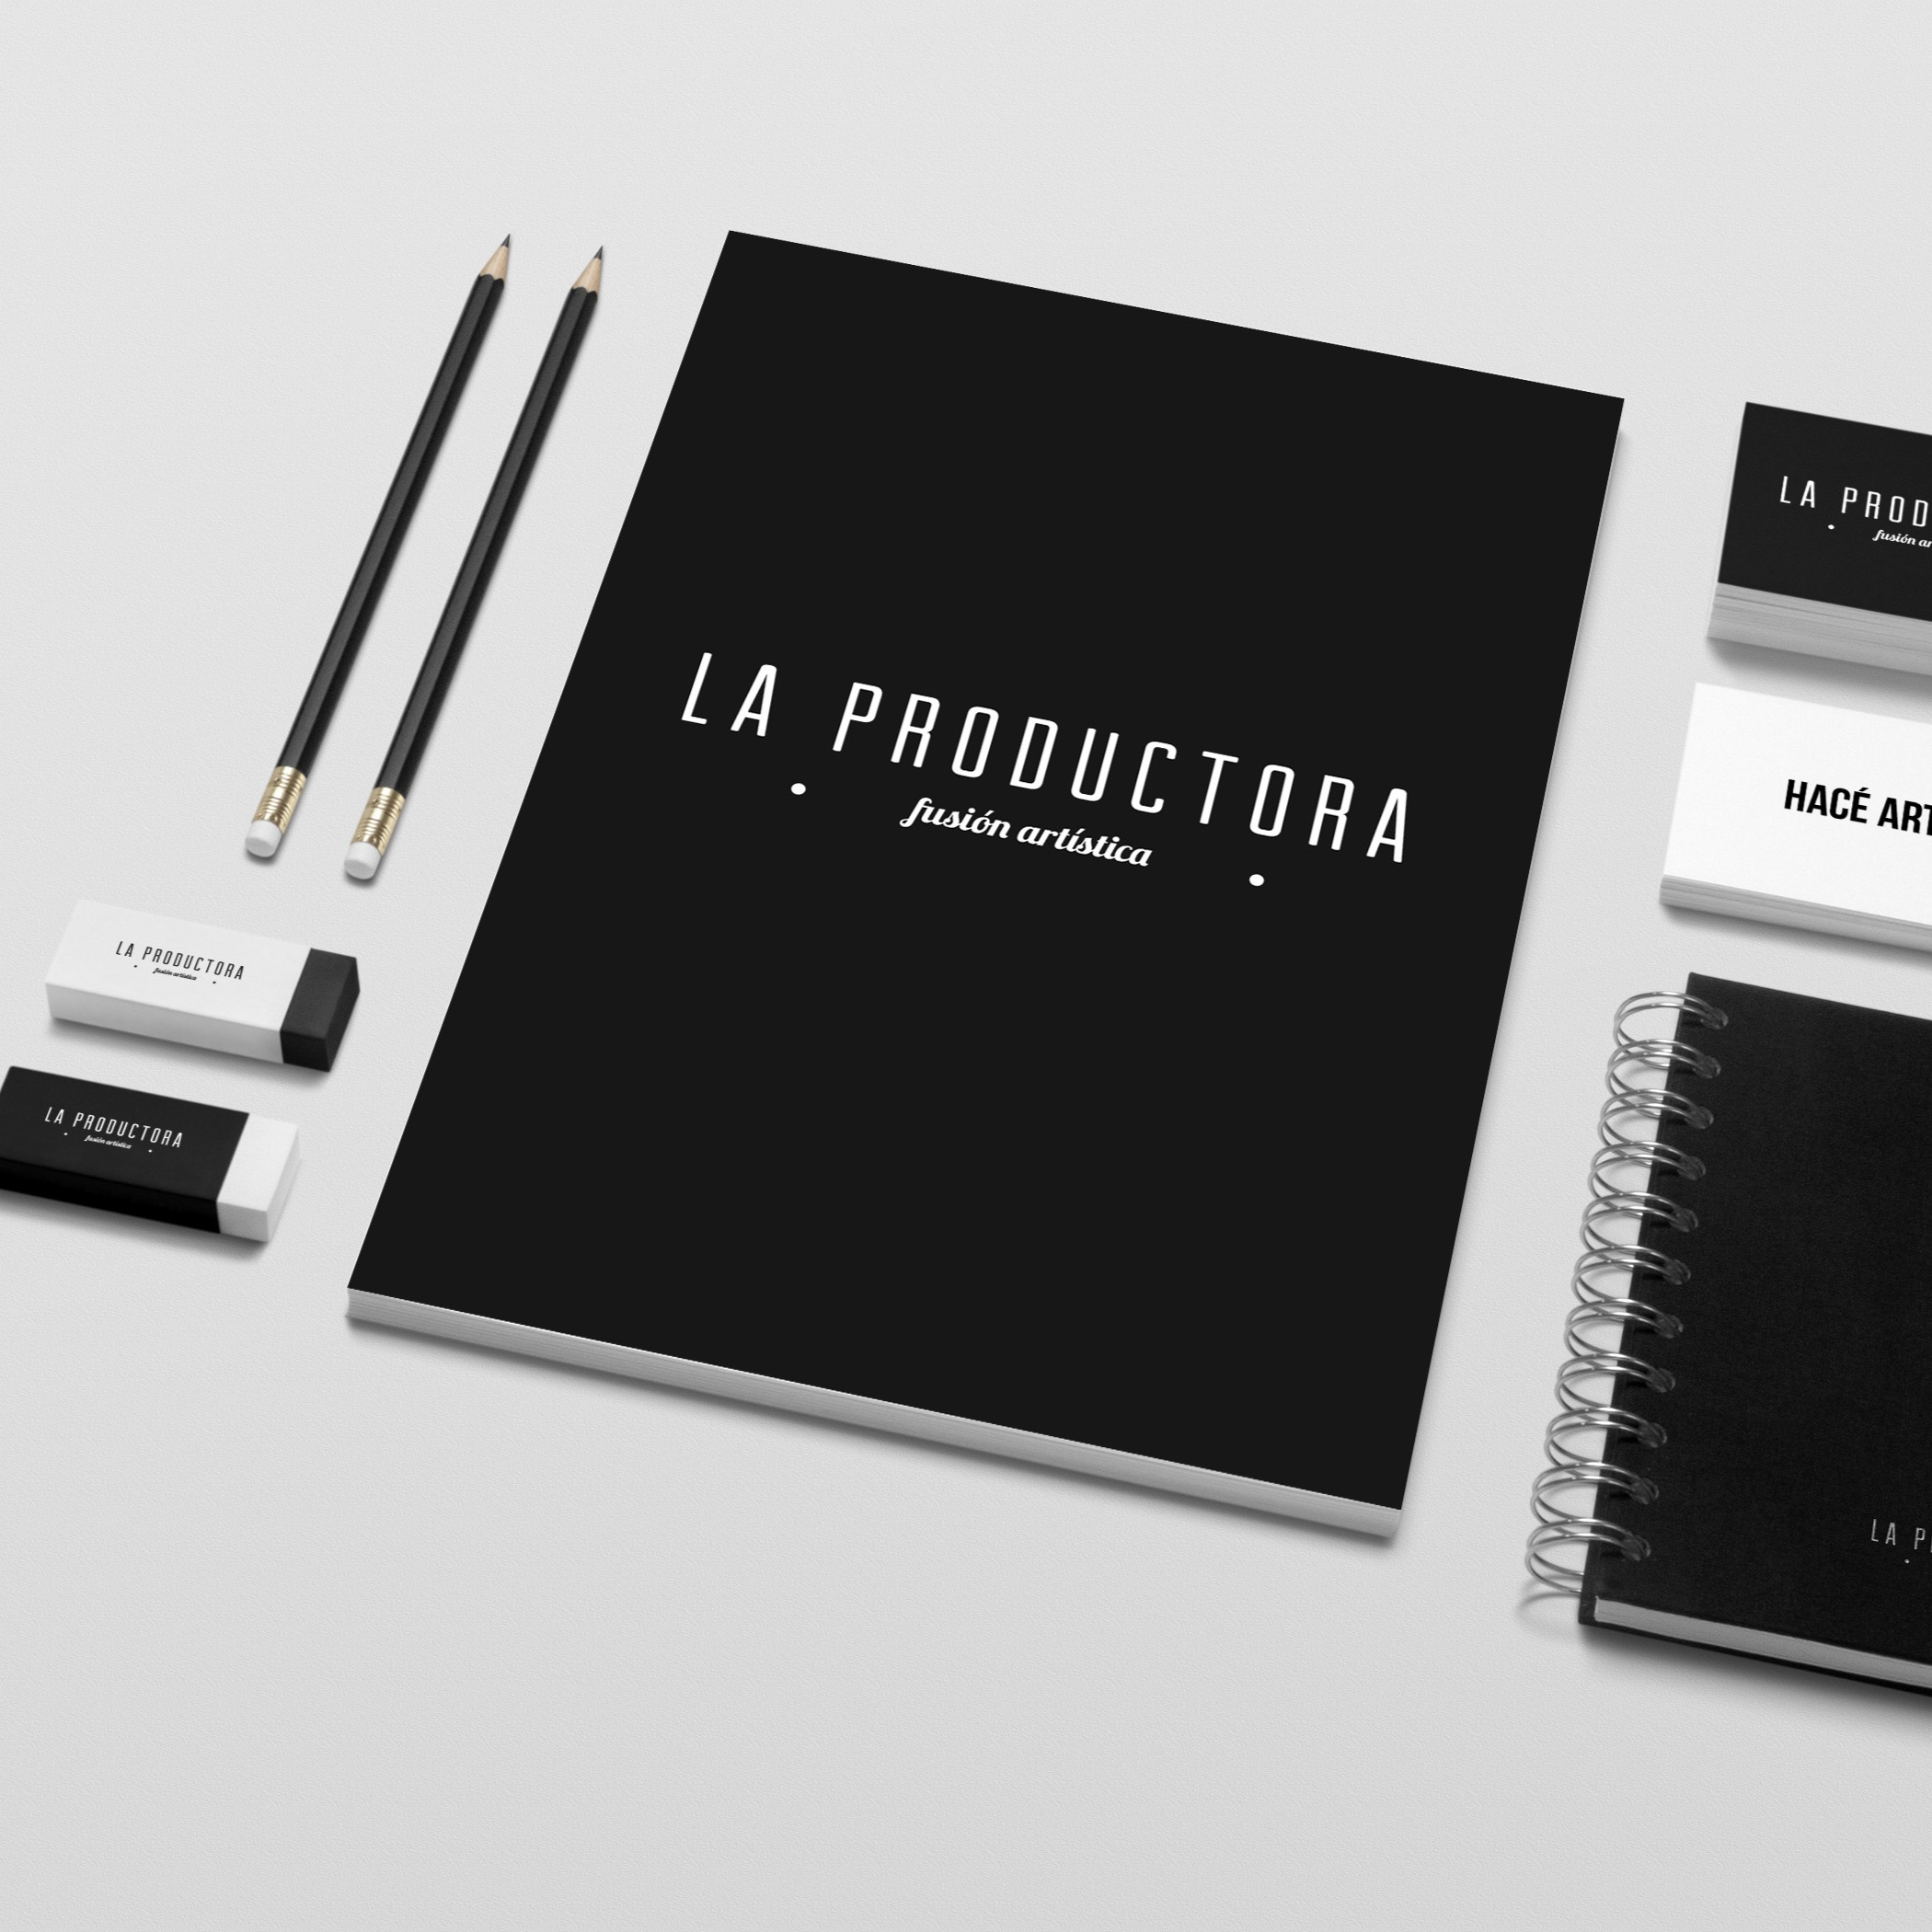 Branding-Identity-Mock-Up-5_edited